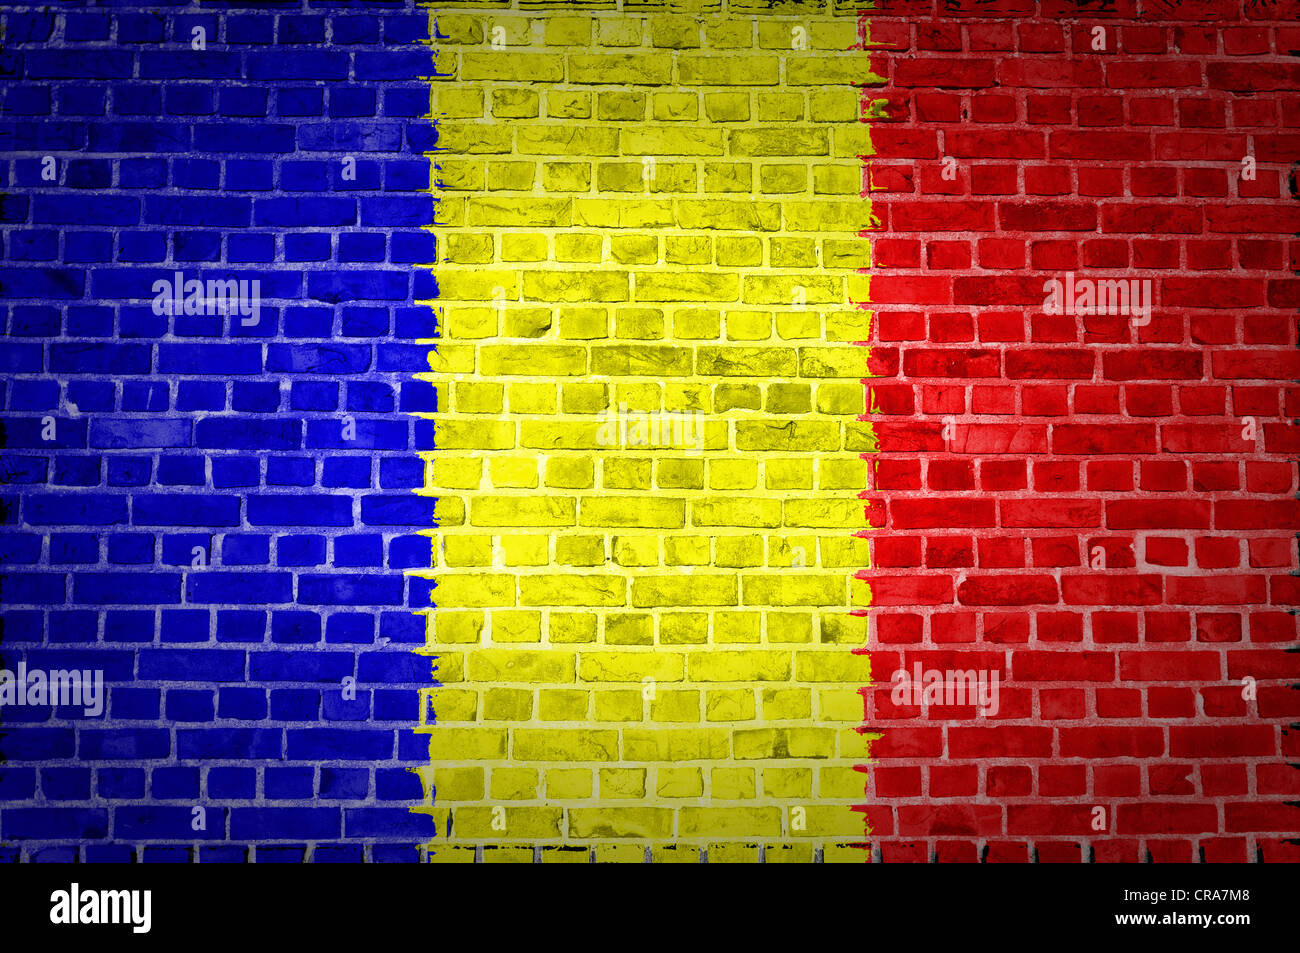 An image of the Chad flag painted on a brick wall in an urban location - Stock Image